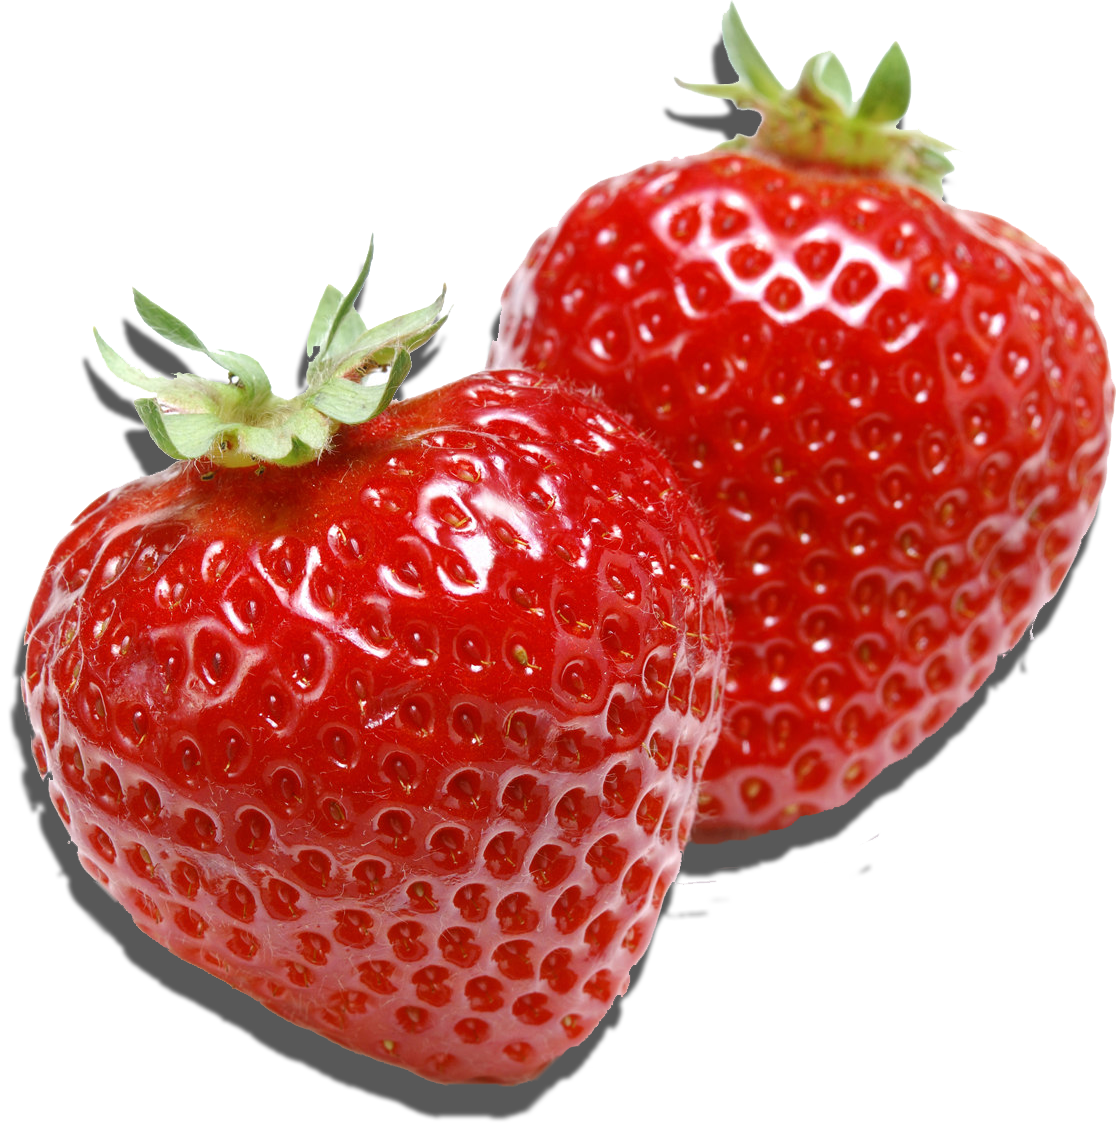 Strawberry PNG - 21053